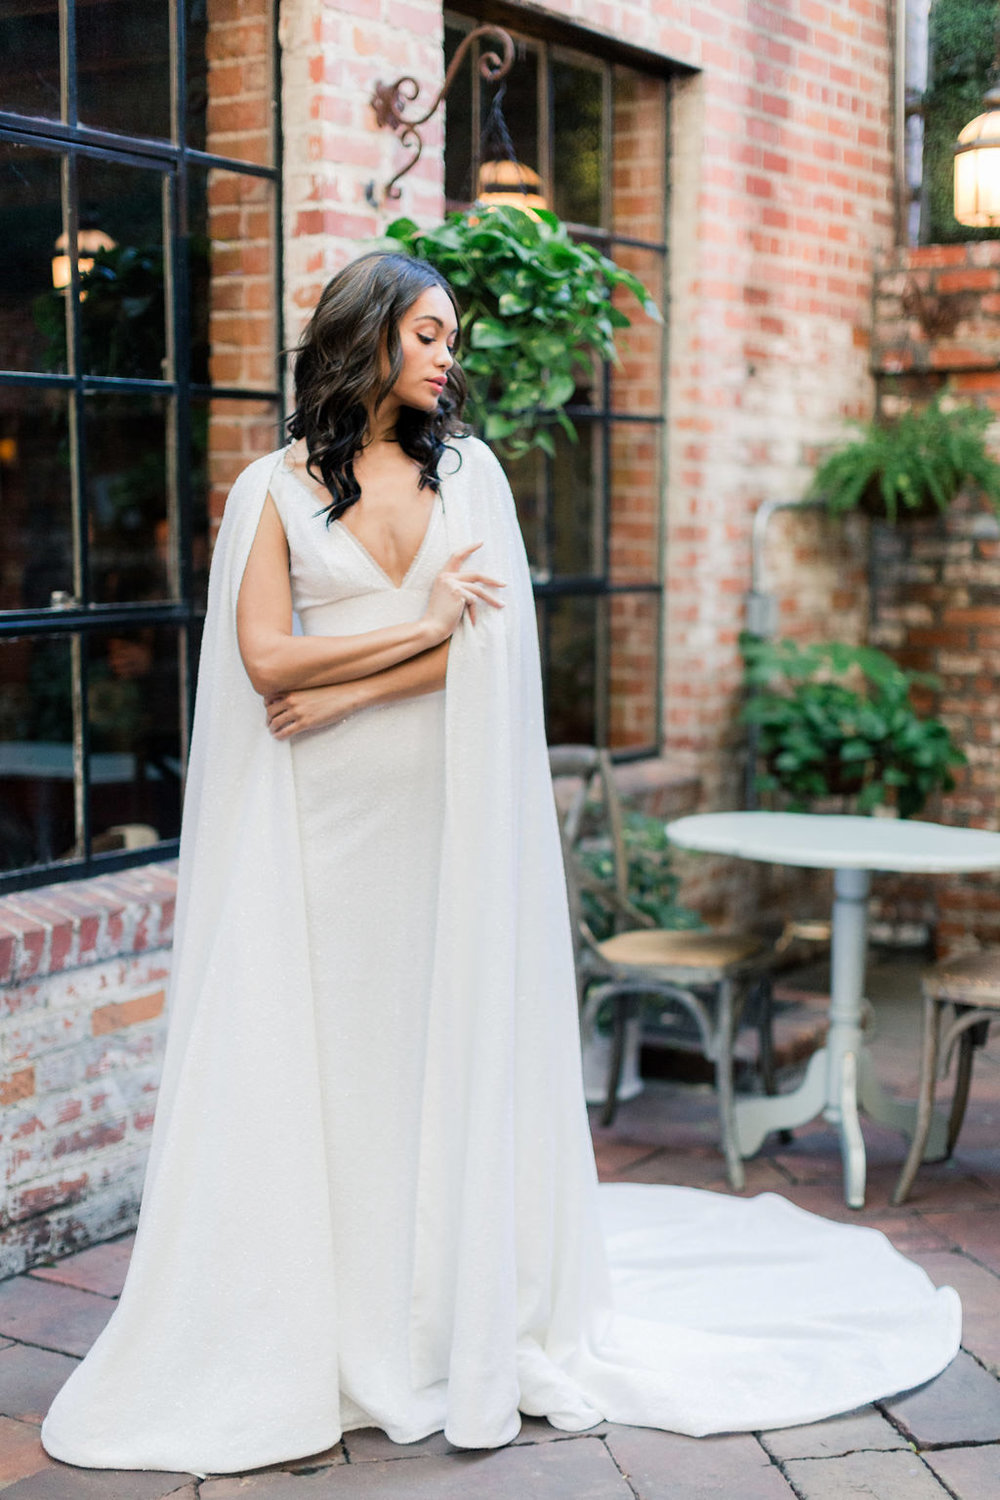 Brinlee wedding dress from the Allison Webb Spring 2019 Bridal Fashion Event in LA, Photo by Jessica Grazia Mangia Photography